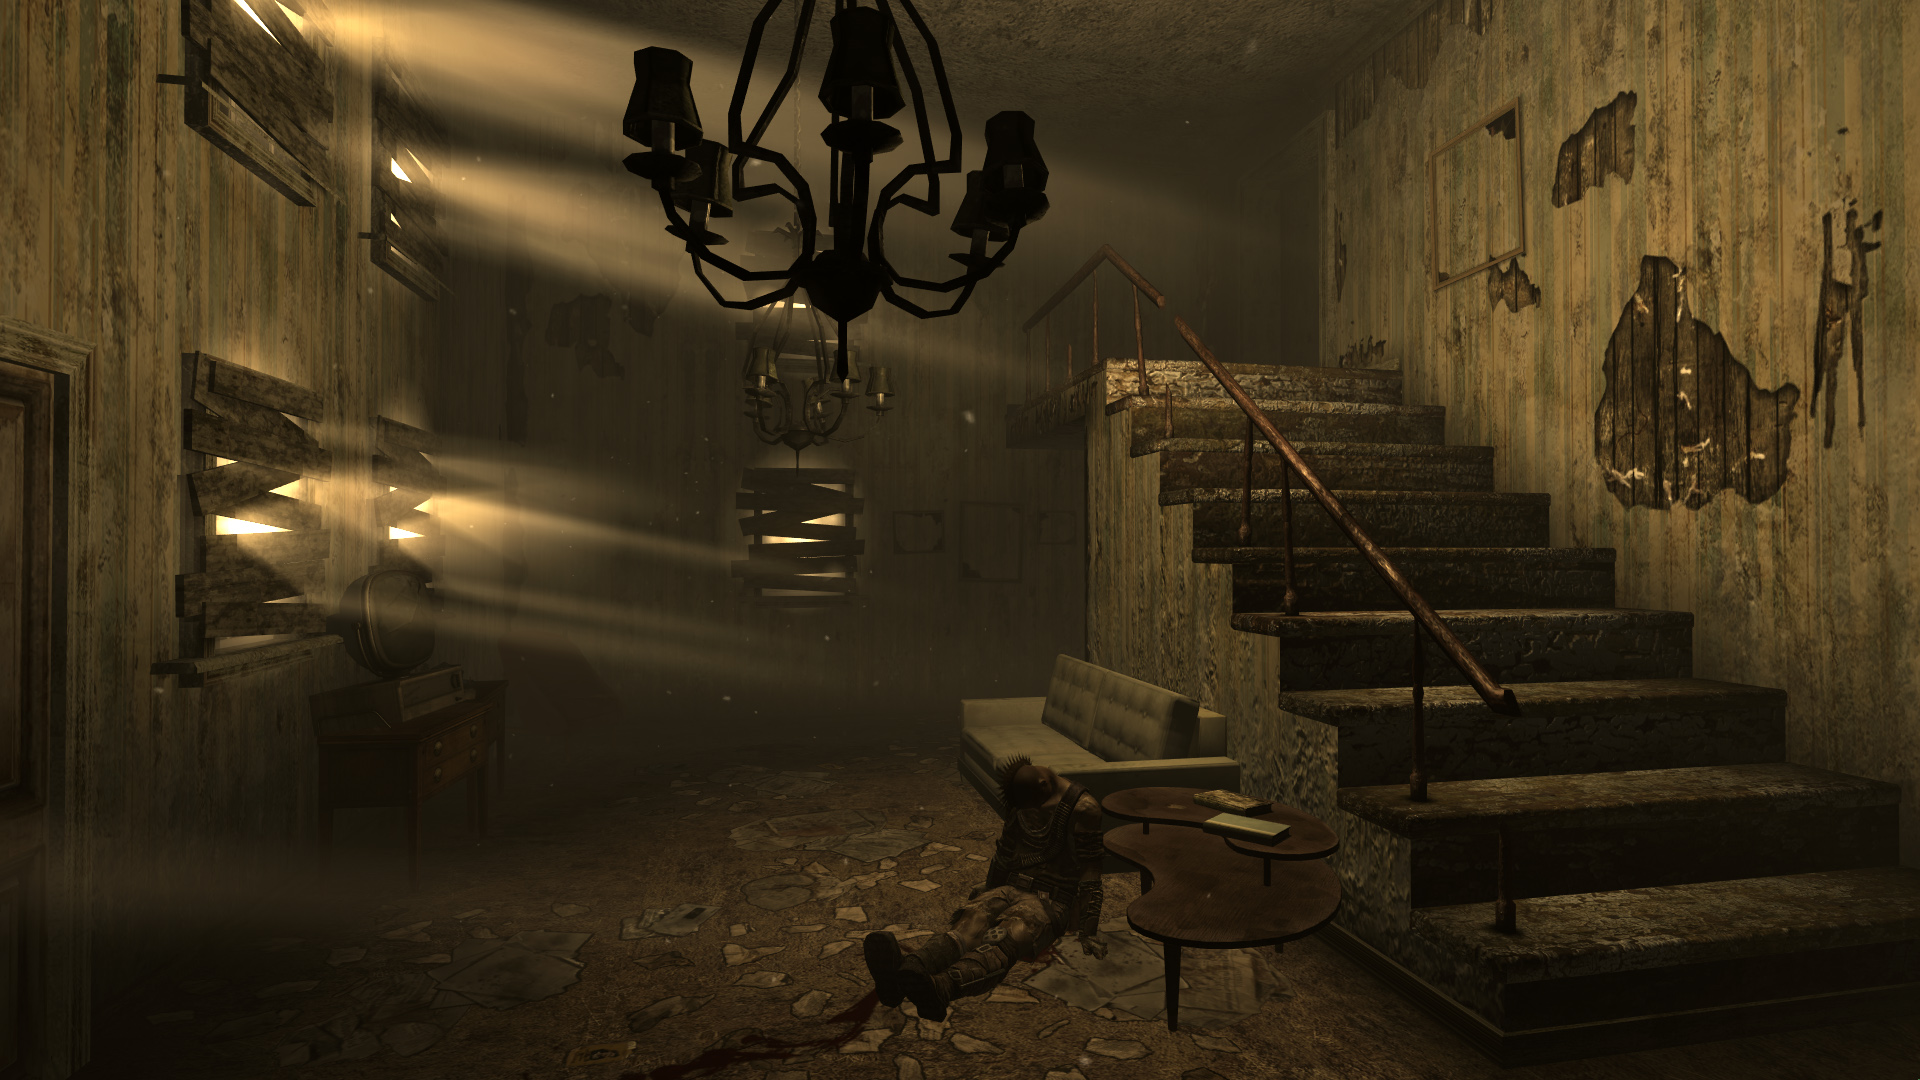 Image Gibson House insidejpg Fallout Wiki FANDOM powered by